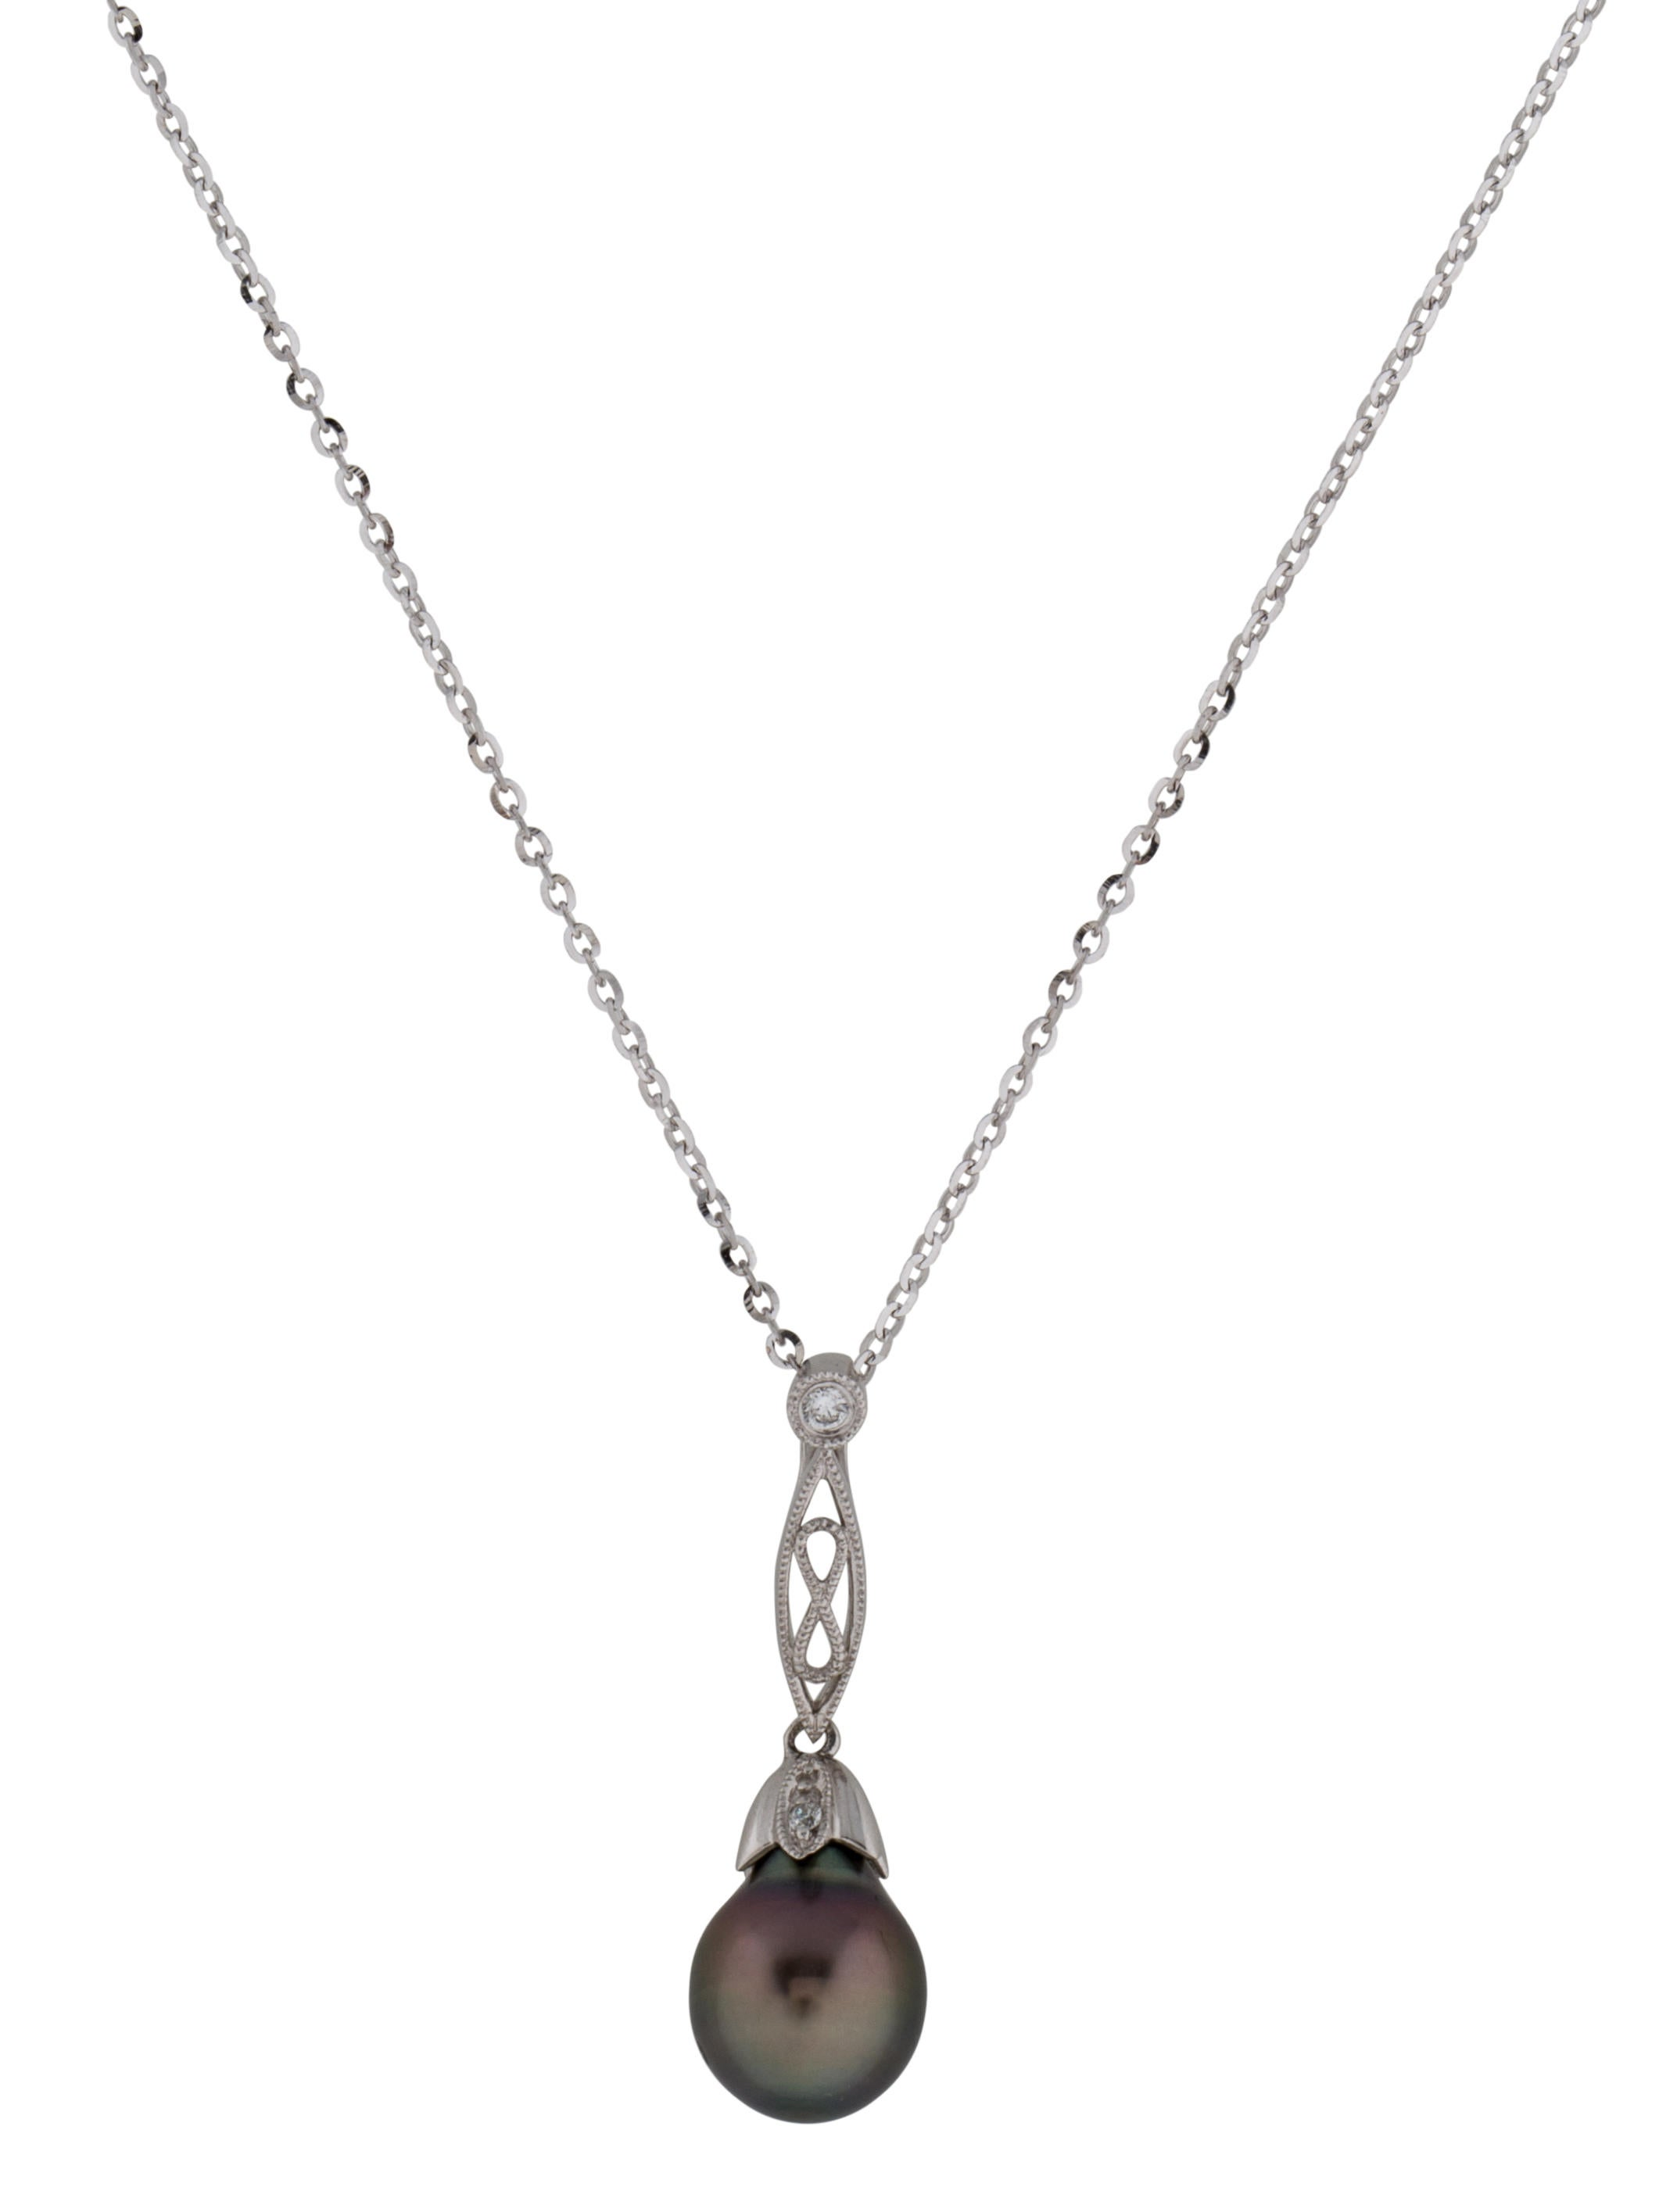 tara pearls tahitian pearland diamond pendant necklace w